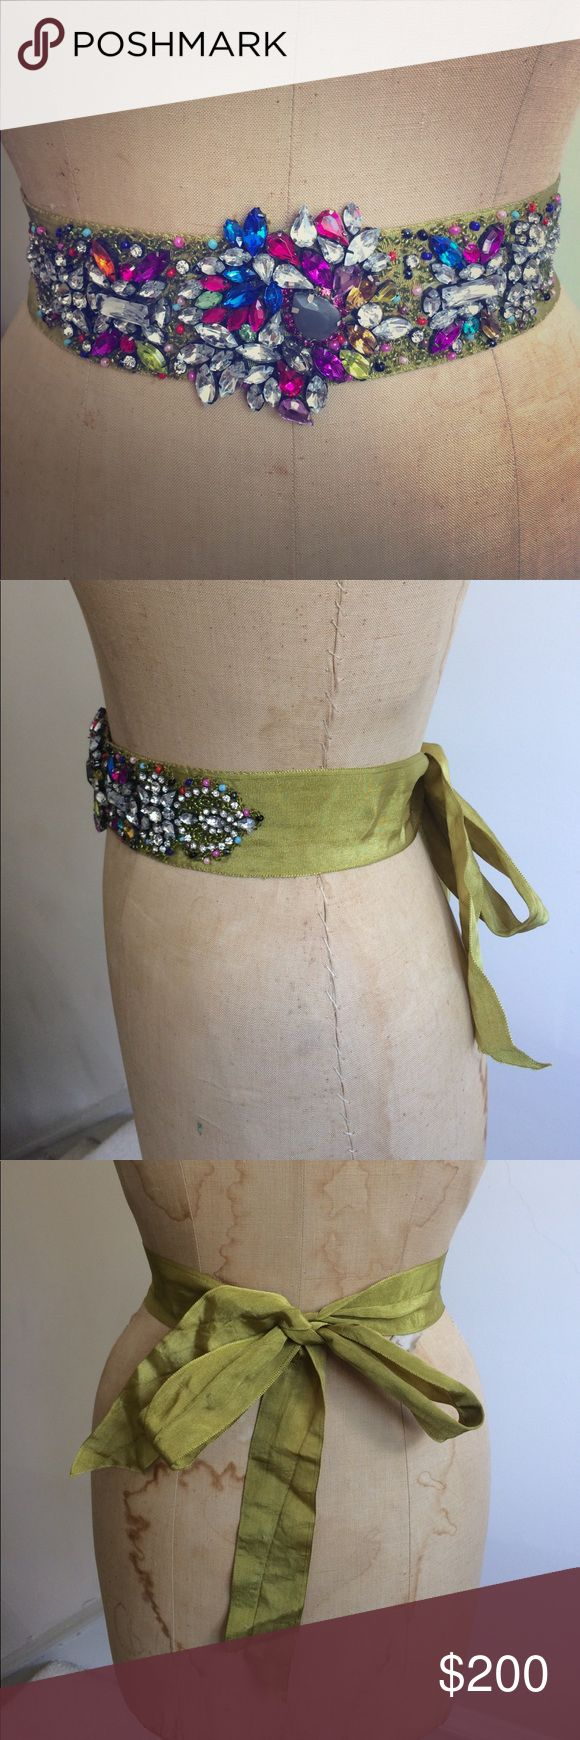 """EUC Anthro Jeweled Sash by Deepa Gurnani Gorgeous sash only used once and all gems still intact. By designer Deepa Gurnani. Hand crafted and so special. Pricey piece but the craftsmanship shoes why. 65"""" in total. Width 2"""" Anthropologie Accessories Belts"""